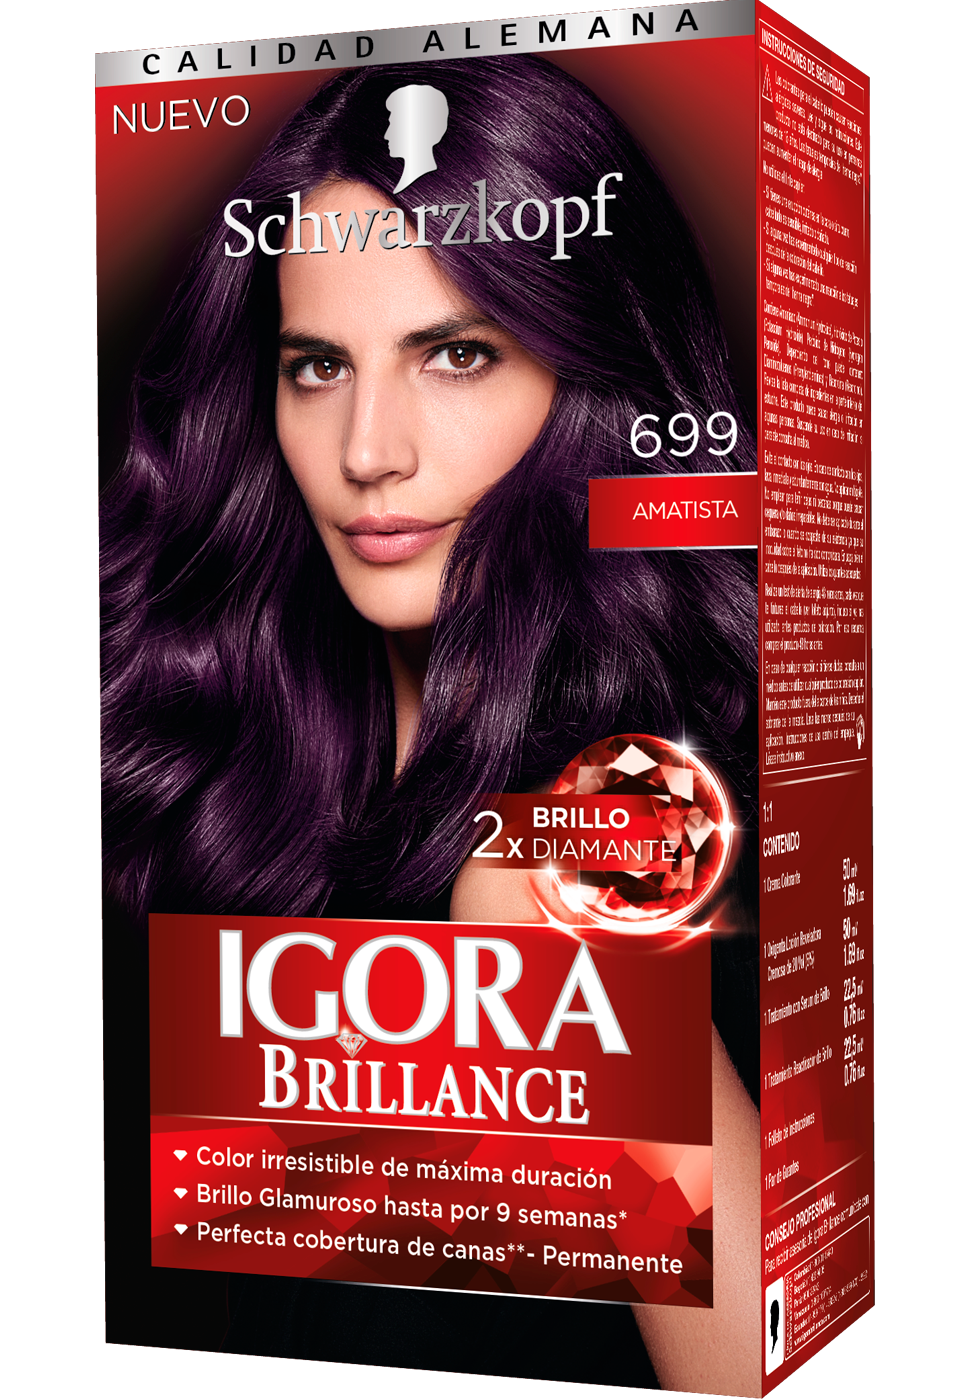 Igora brillance 699 amatista